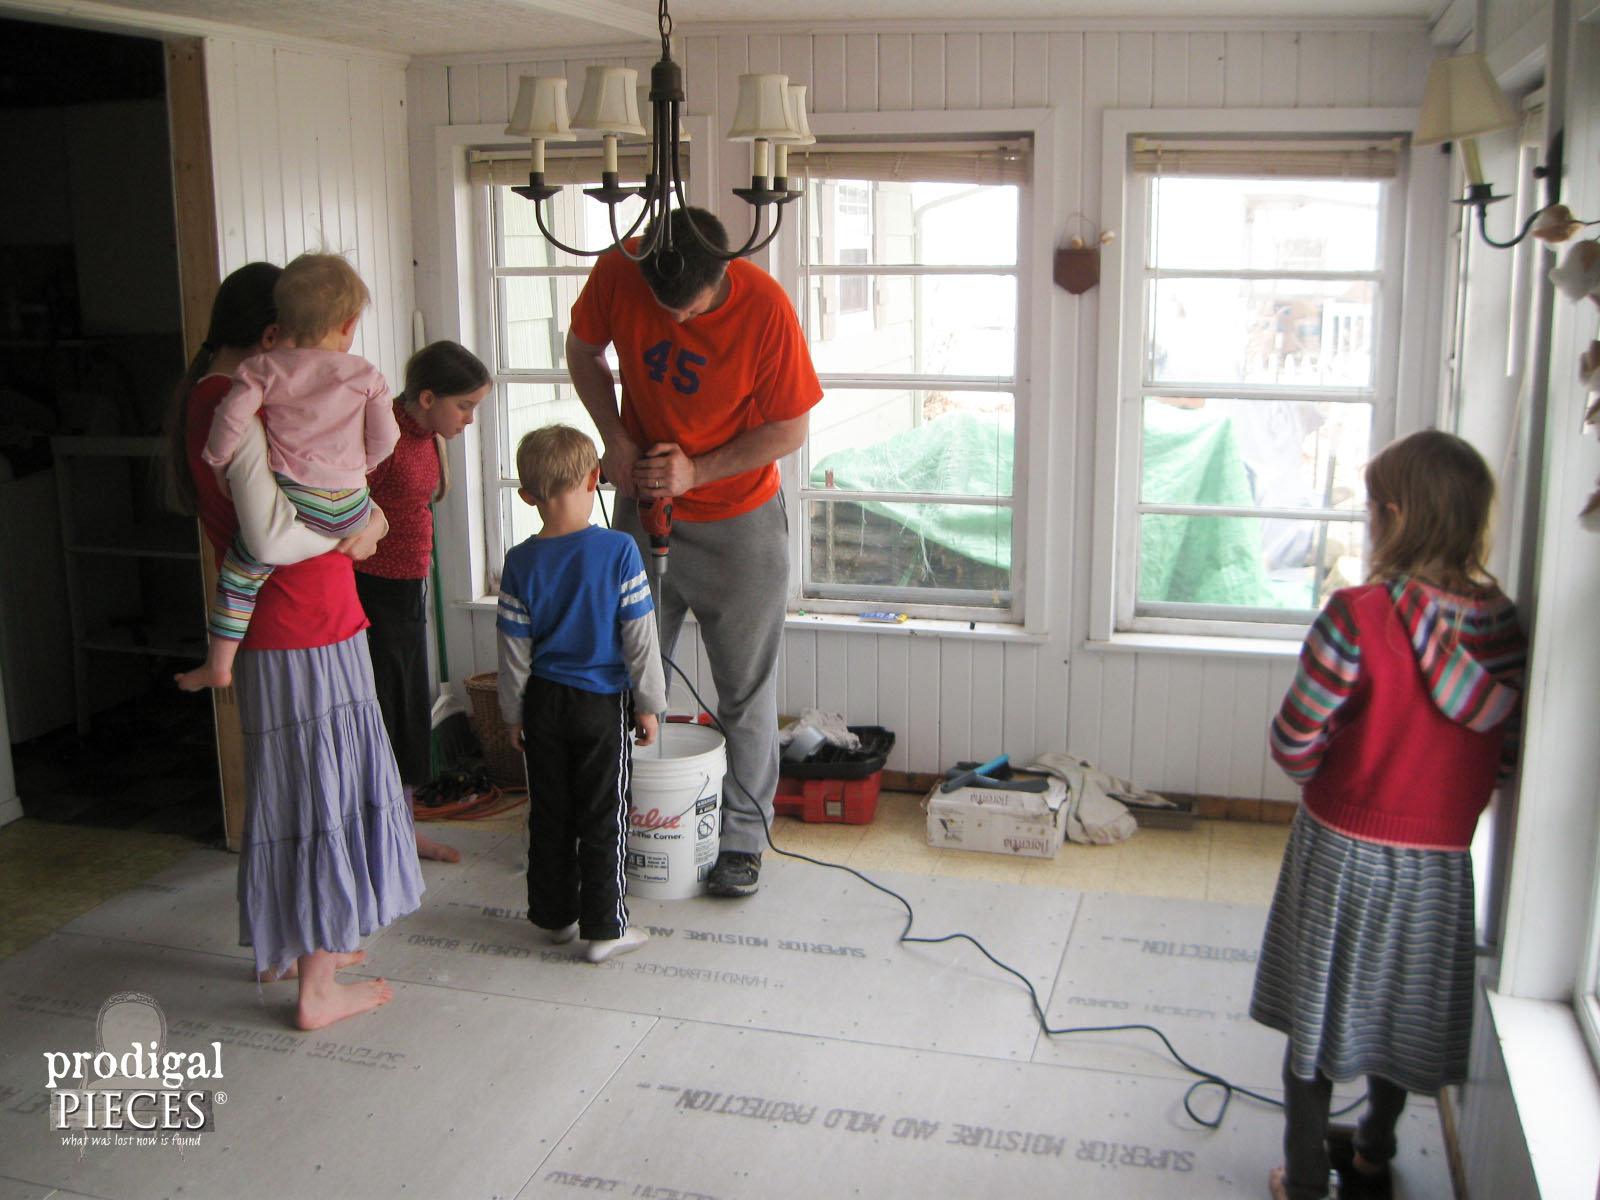 Kids Watching While Dad Mixes Mortar for Tile Floor | Prodigal Pieces | www.prodigalpieces.com